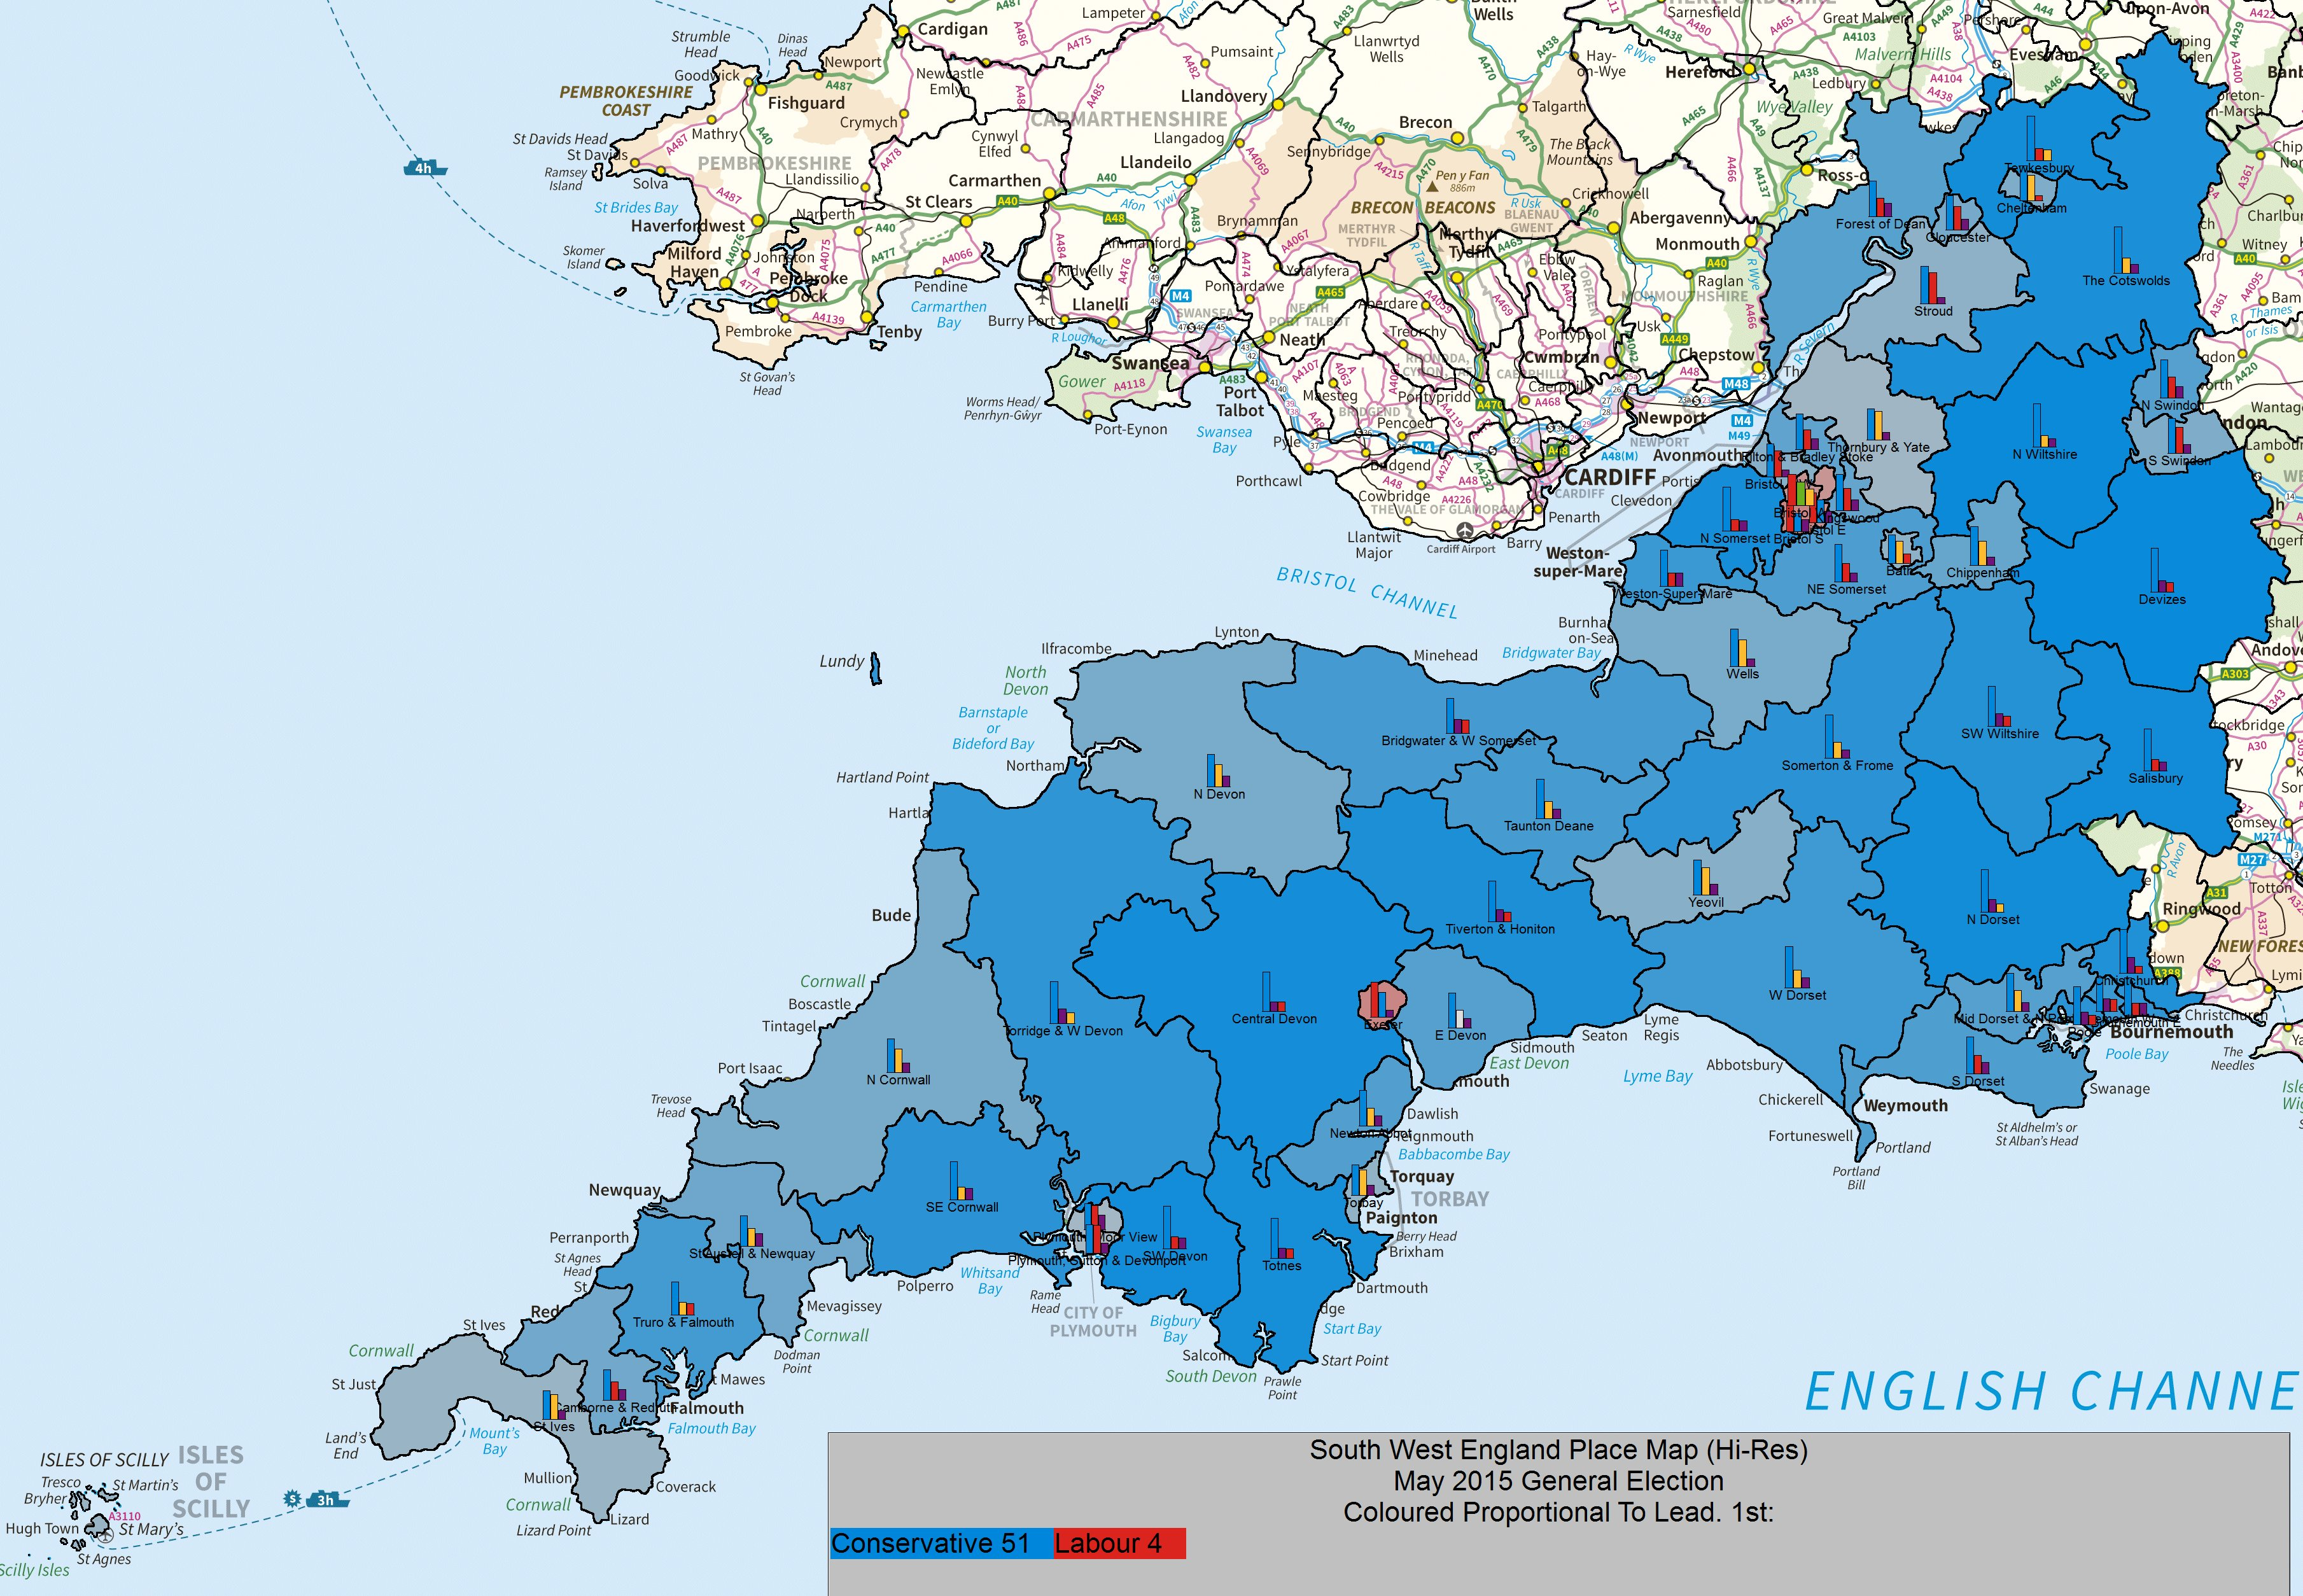 Map Of Uk General Election Results.Uk Elect Uk General Election Forecast For South West England